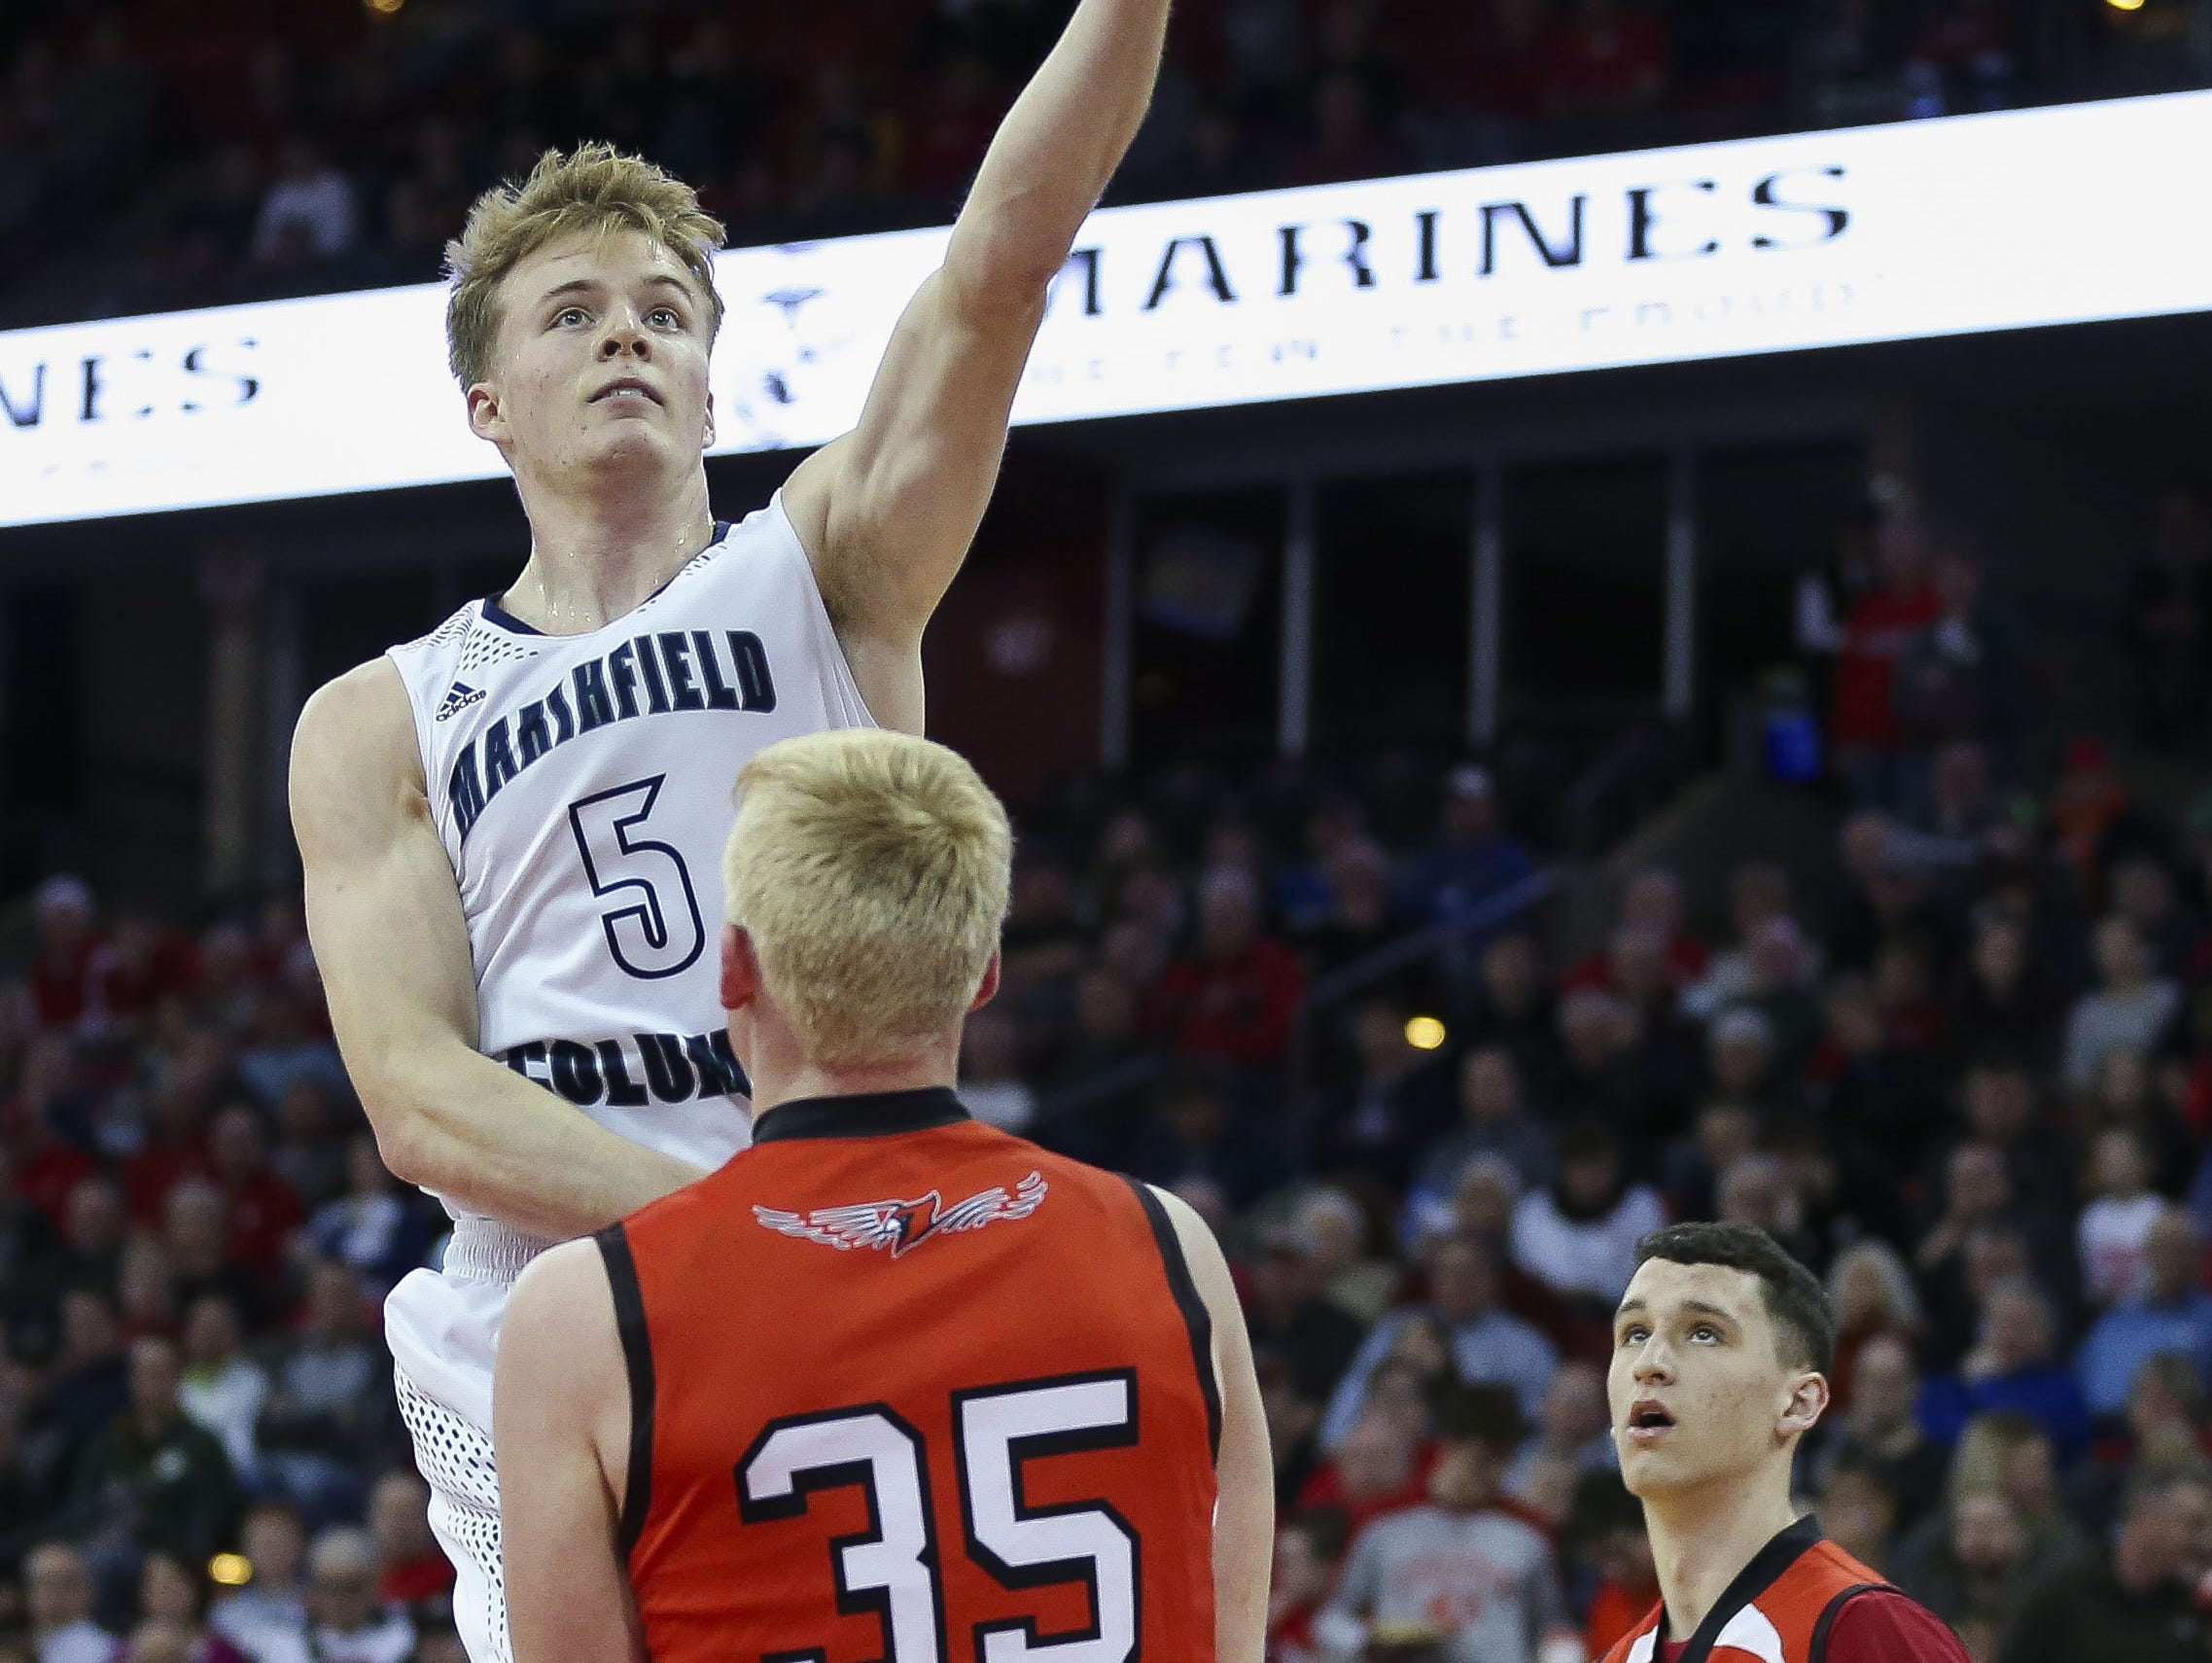 Columbus Catholic High School's Noah Taylor (5) puts up a shot against Bangor High School in a Division 5 boys basketball state semifinal on Friday, March 15, 2019, at the Kohl Center in Madison, Wis. Columbus Catholic won the game, 69-66, on a buzzer-beater 3-pointer. Tork Mason/USA TODAY NETWORK-Wisconsin